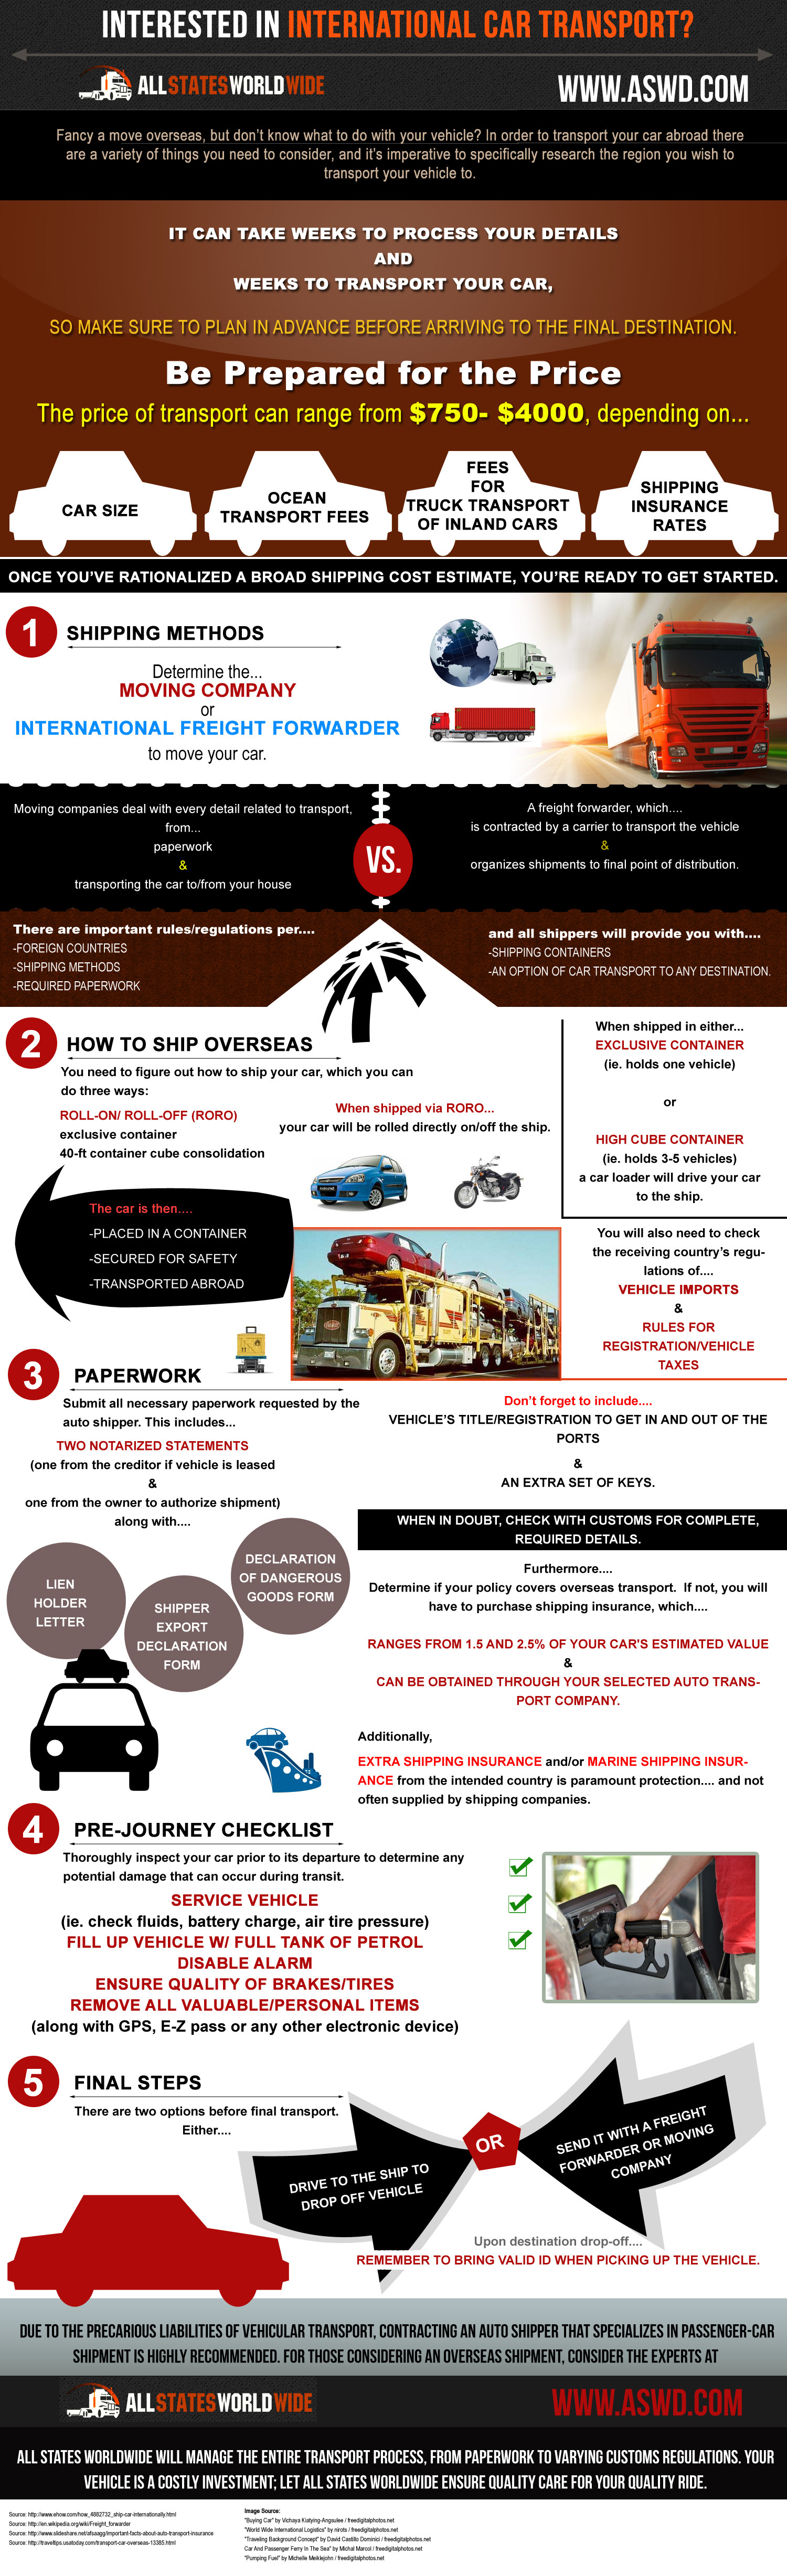 Interested in International Car Transport? Infographic